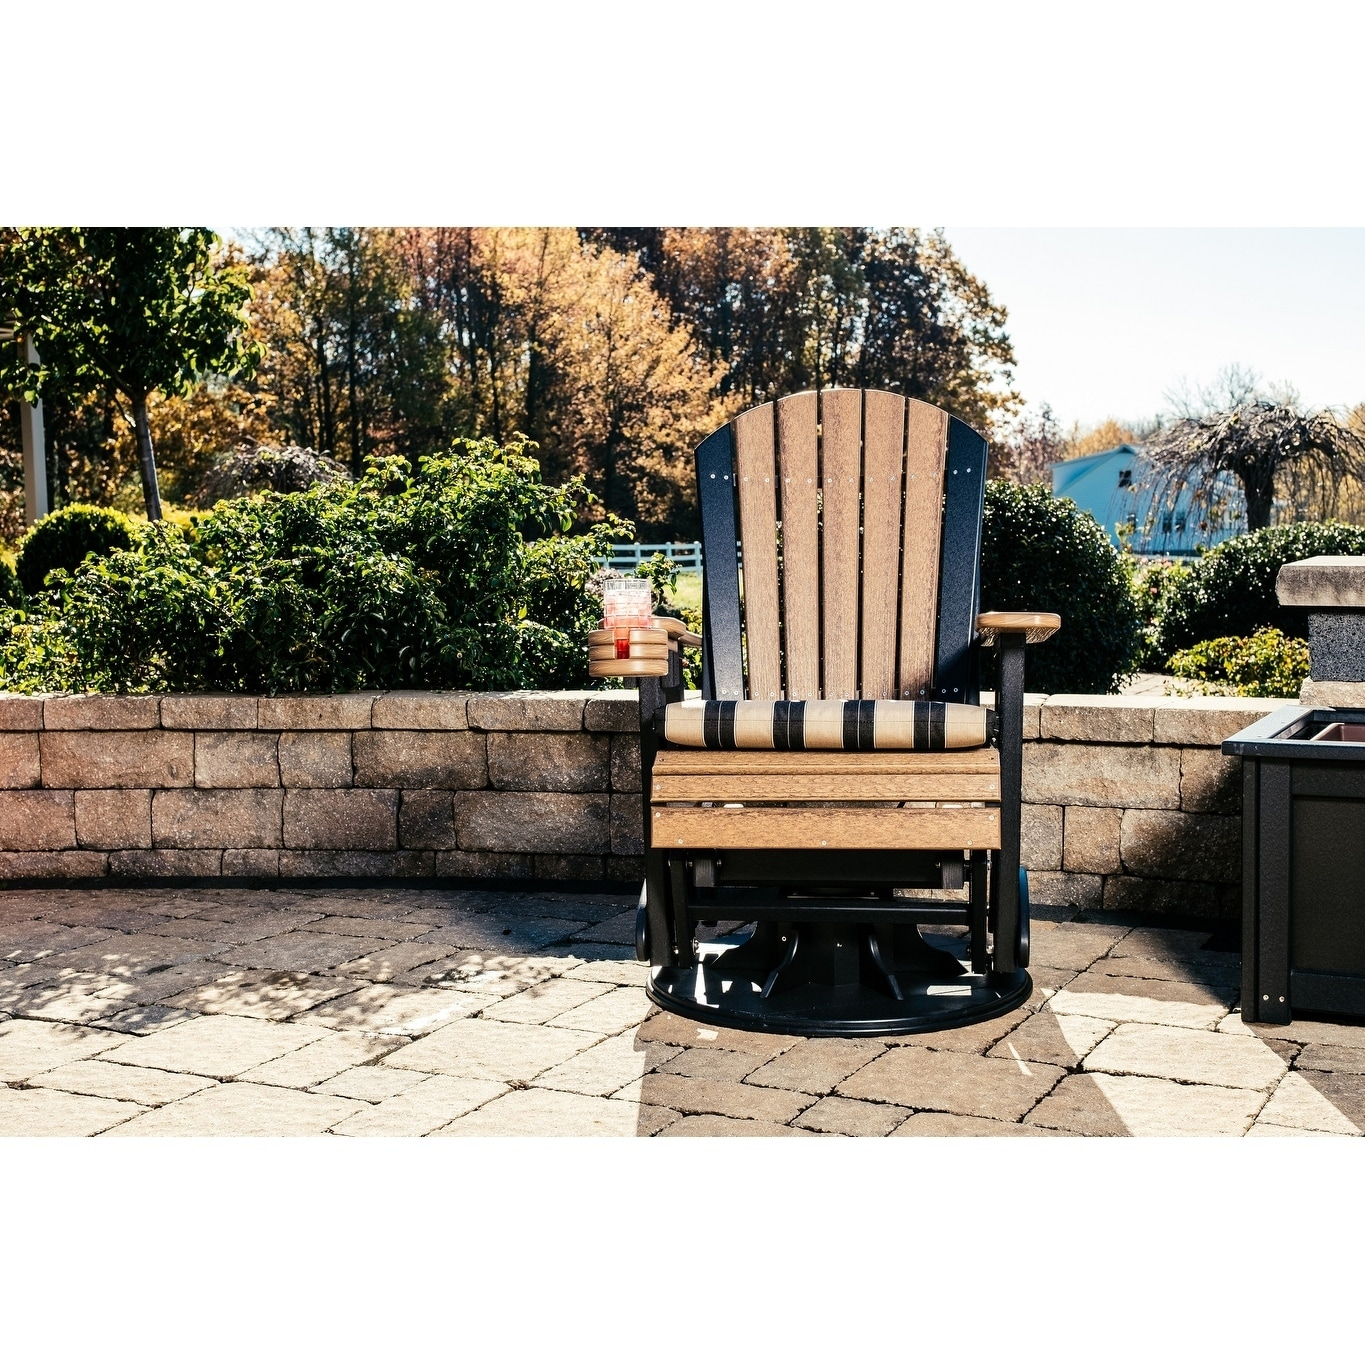 Details About Adirondack Swivel Glider Chair Recycled Plastic